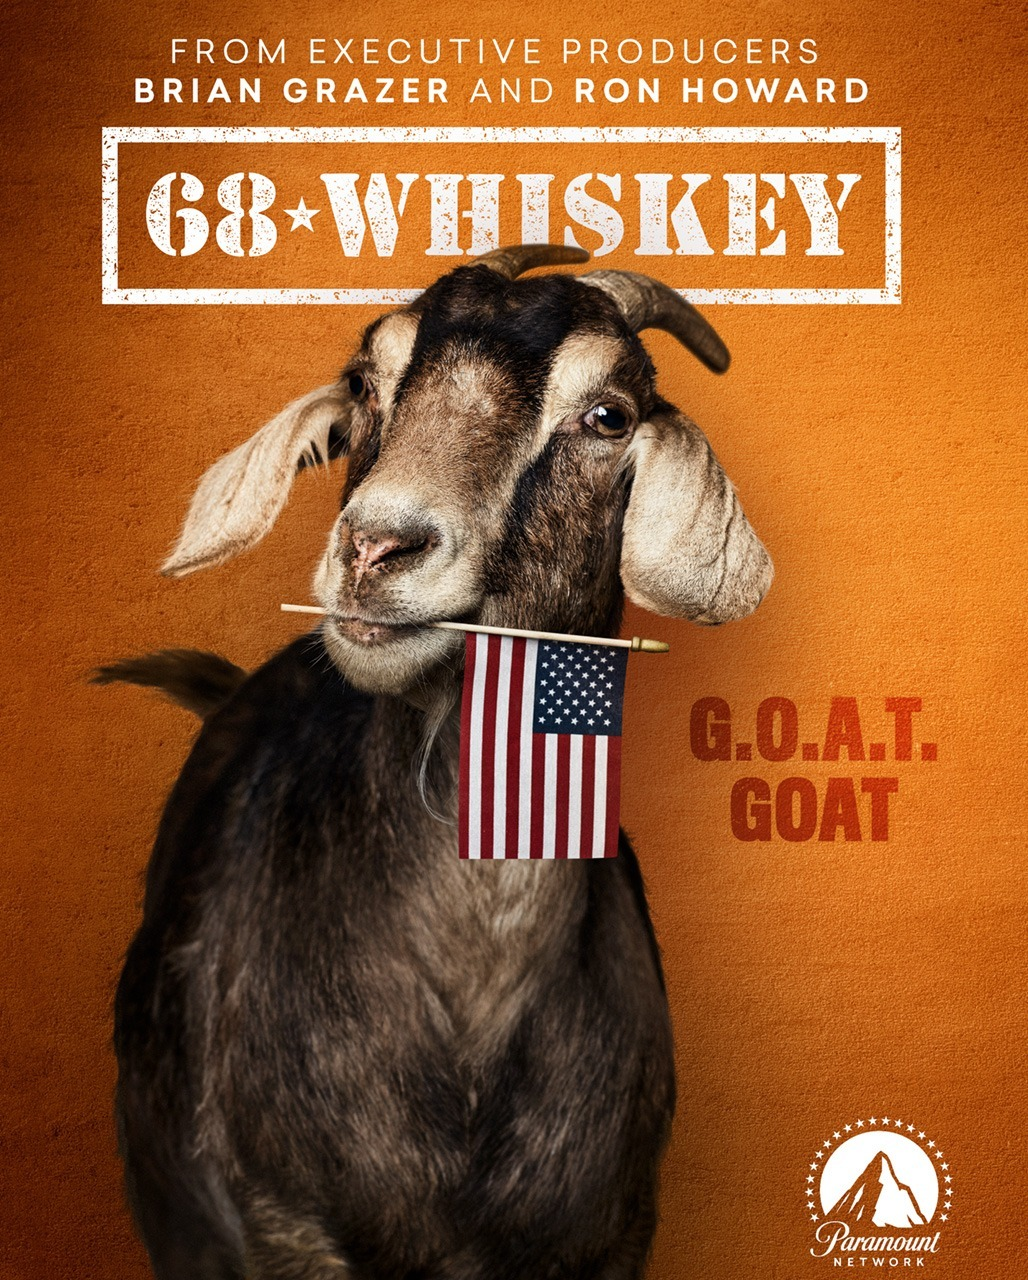 68 WHISKEY | PARAMOUNT NETWORK